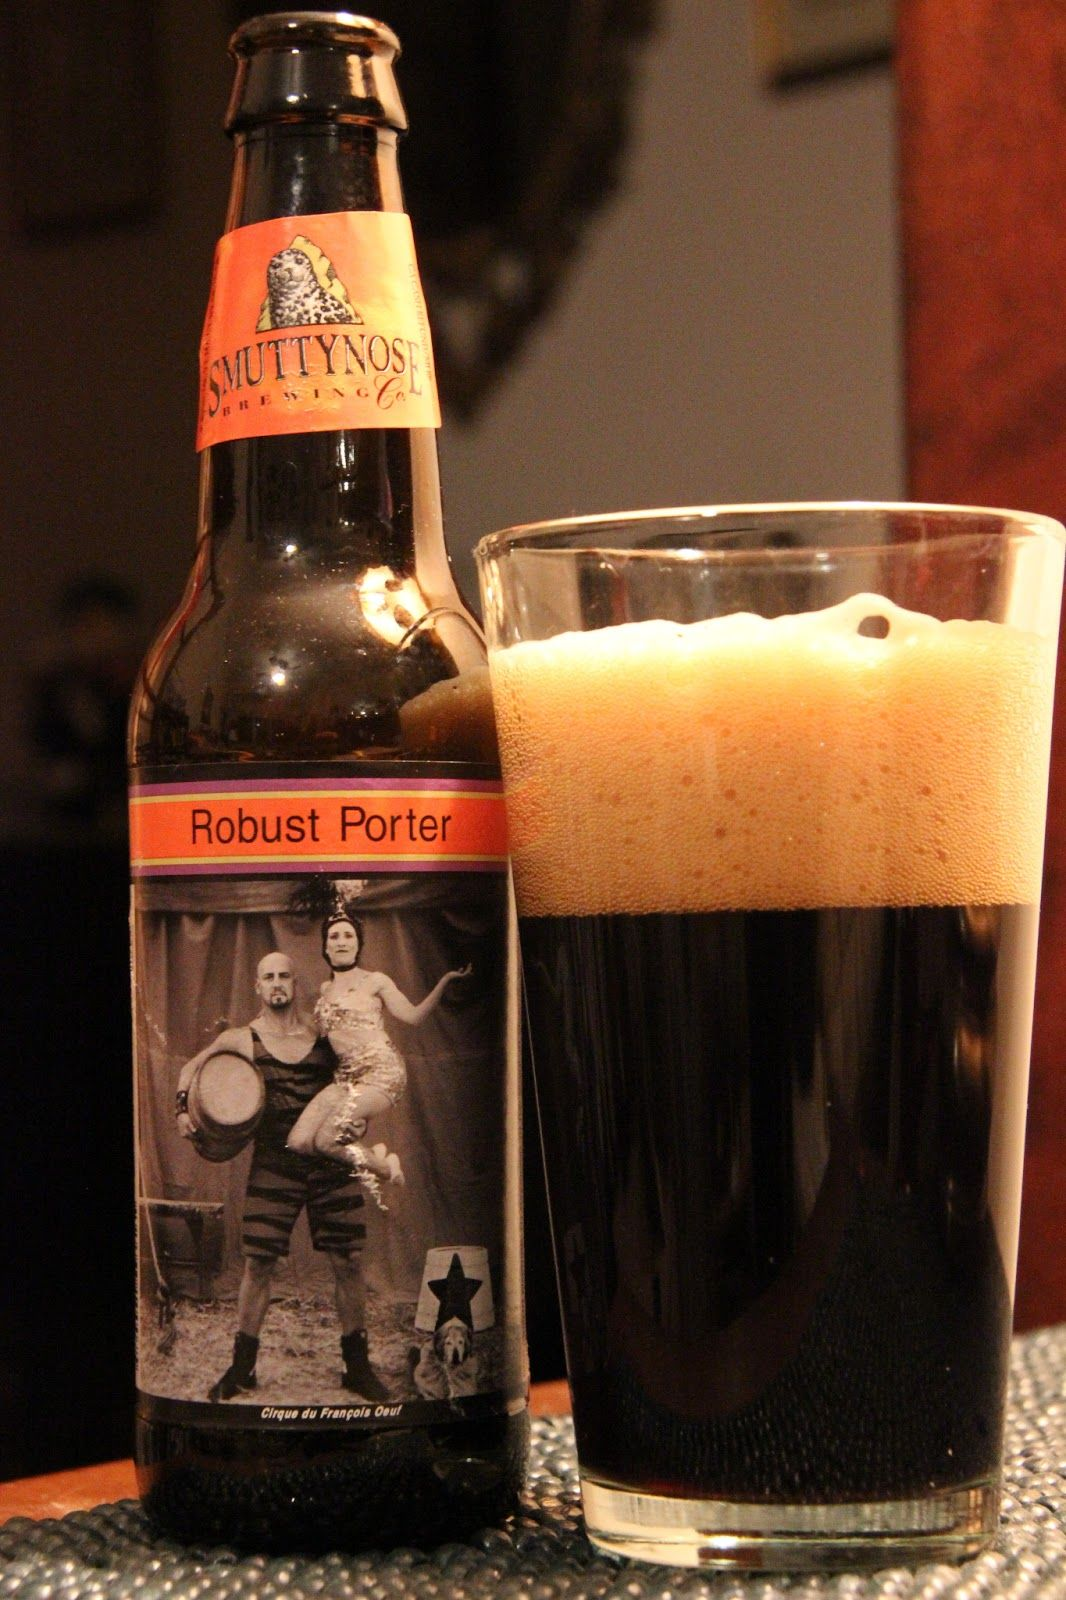 Smuttynose Brewing Company – Robust Porter